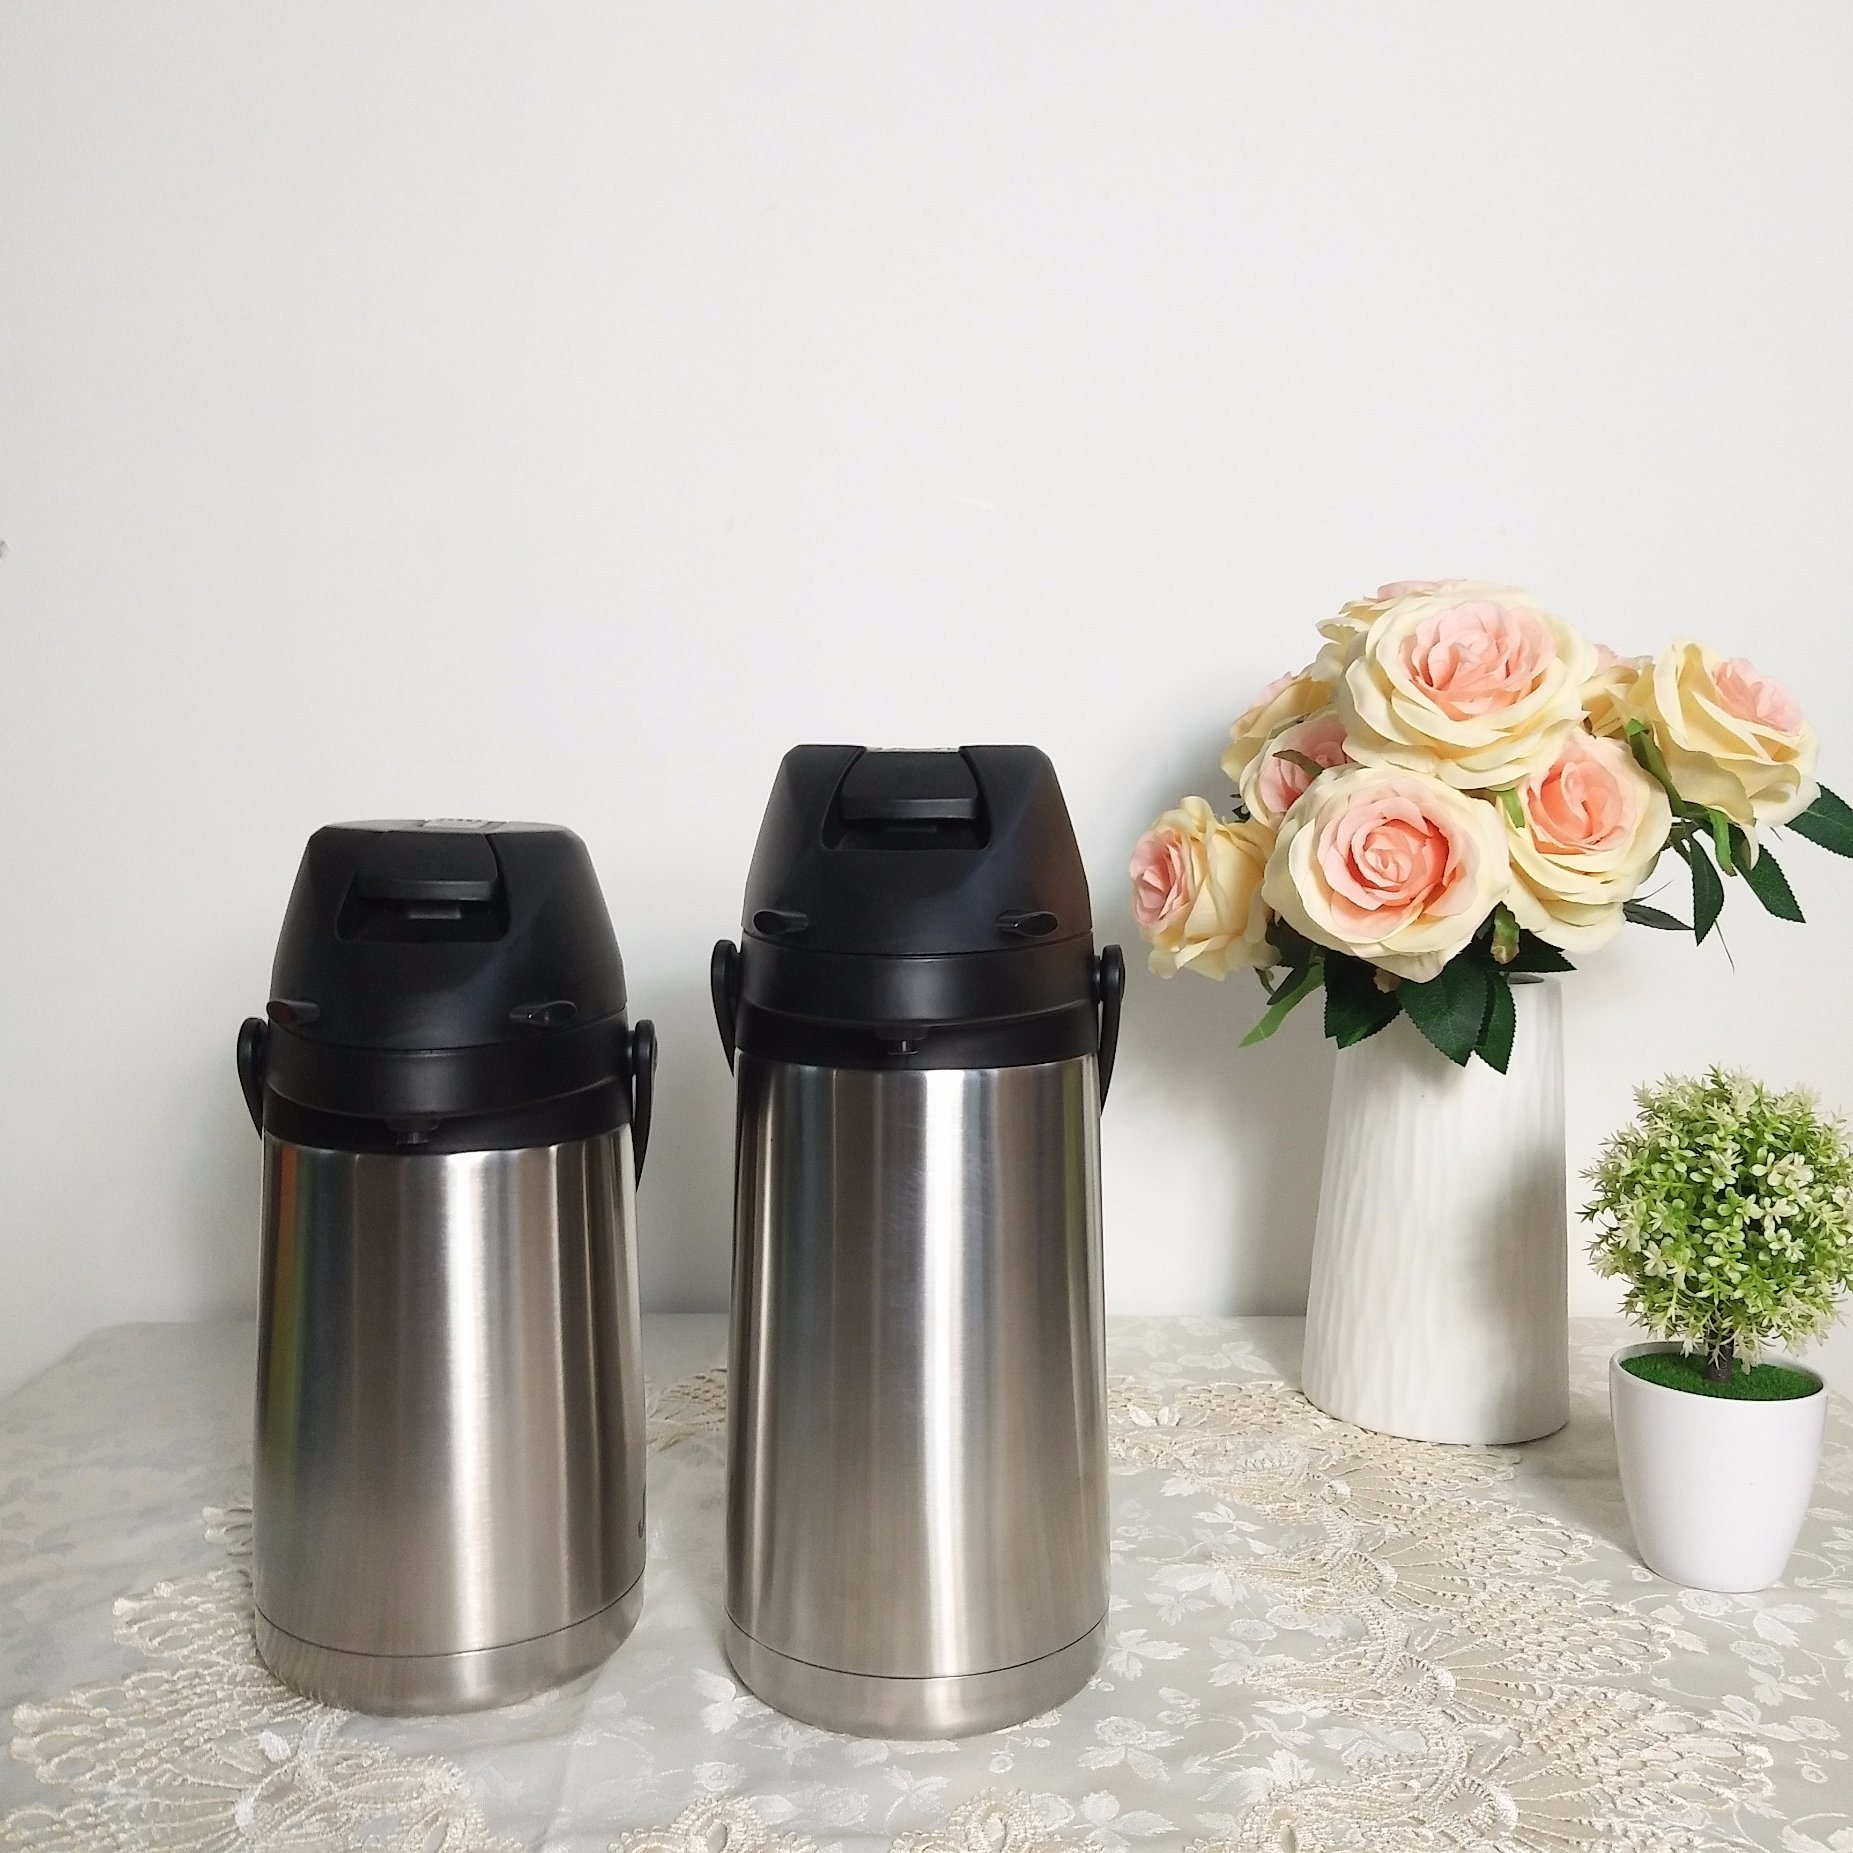 Insulated Vacuum Airpot Thermos Flask with Lever, Mini Airpot/Lever Action Vacuum Airpot, Stainless Steel, Mini Thermos